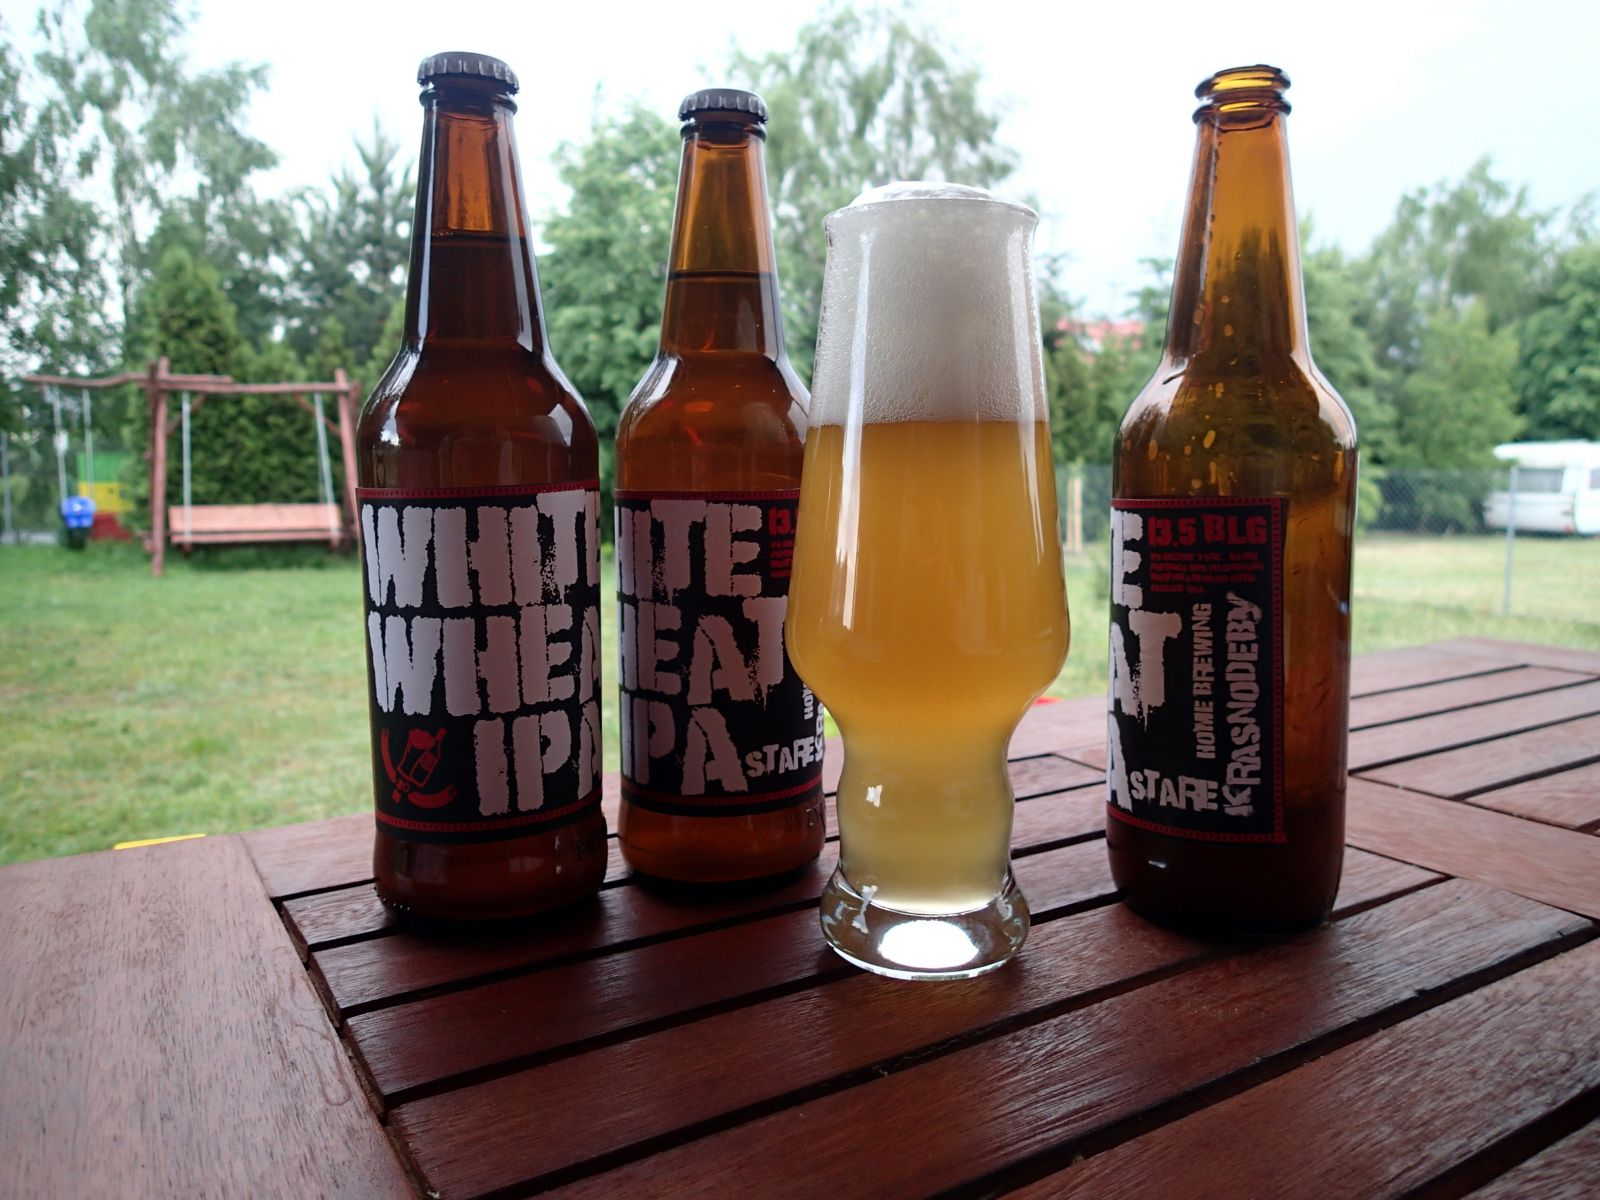 White Wheat IPA